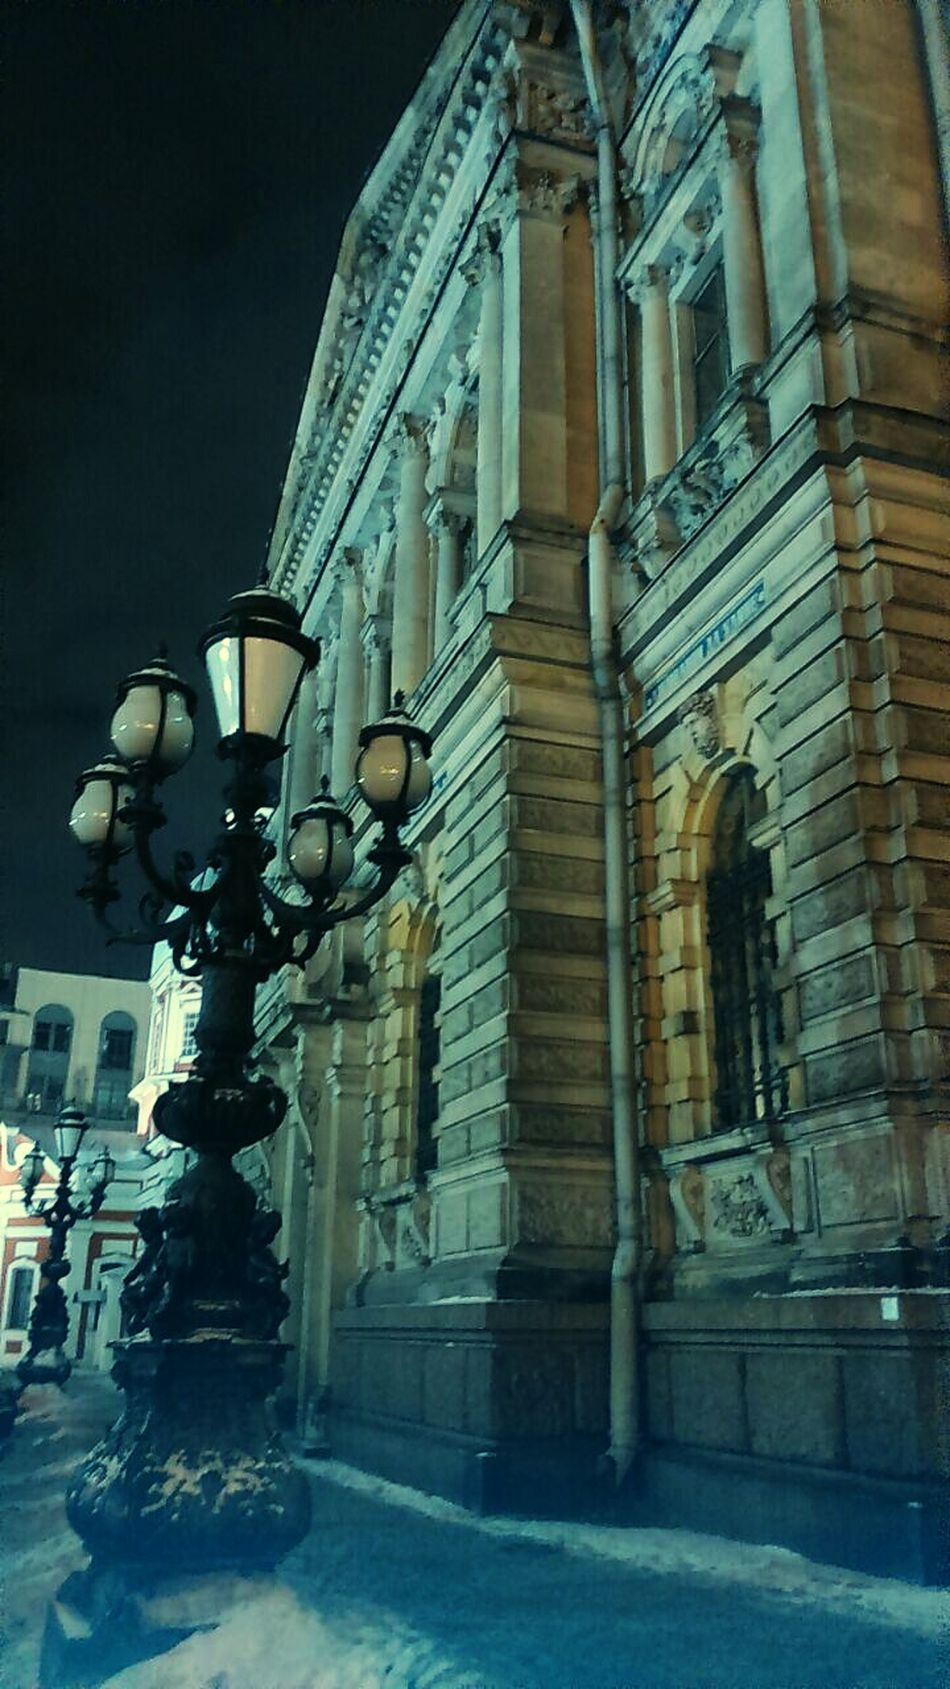 Architecture Built Structure Building Exterior History Travel Destinations City Outdoors No People Day Library Bilding Stpetersburg Photo Russia Live Air Nice Nightlife Love Good Photography Street